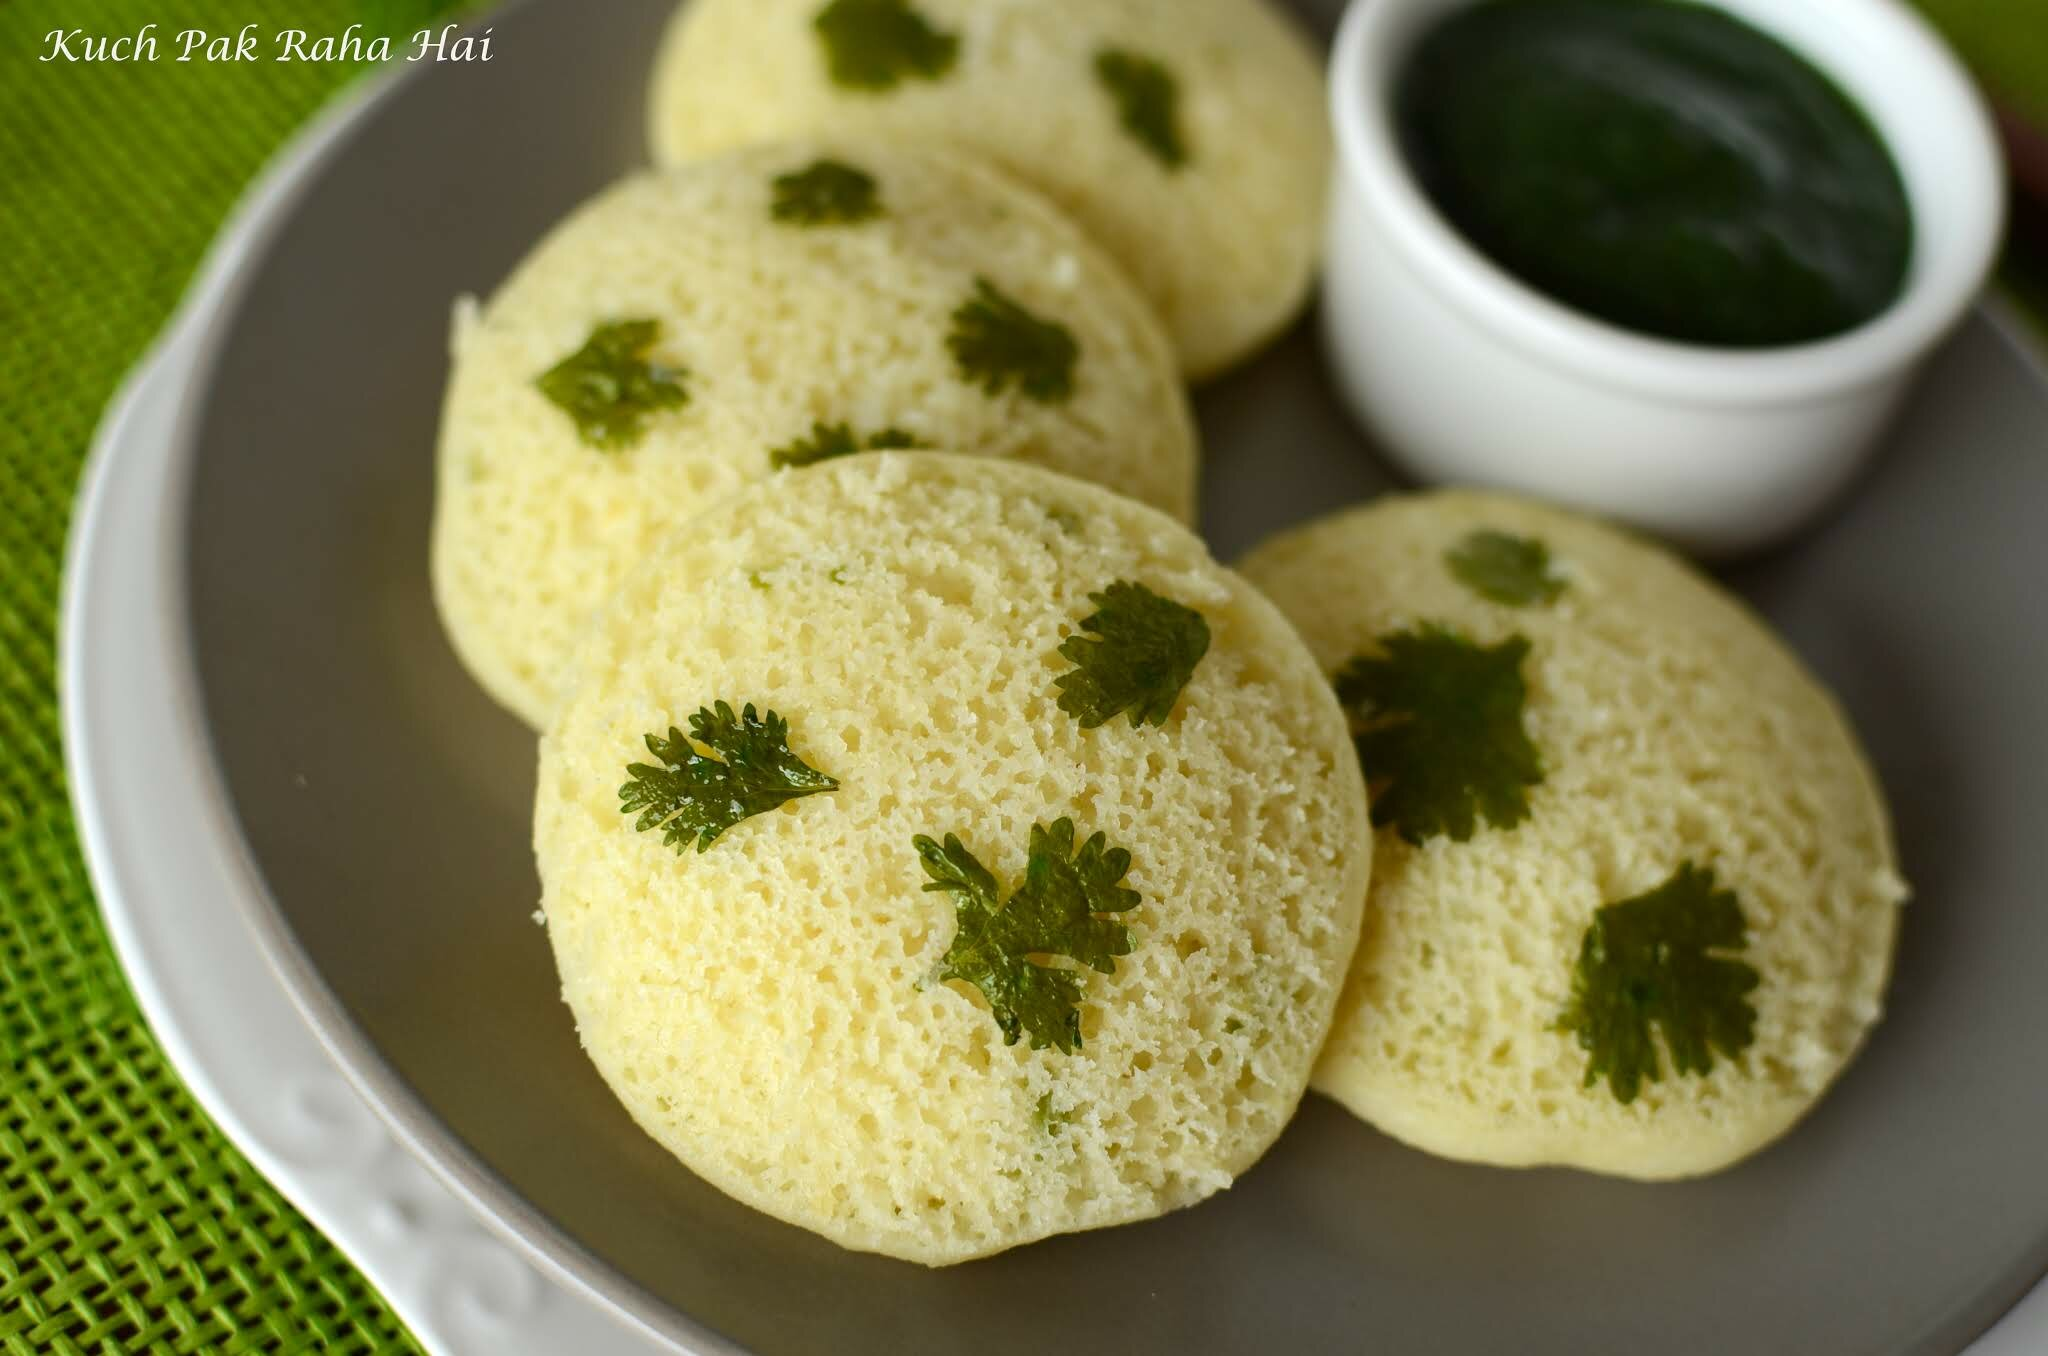 Instant Moong Dal Idli recipe made without rice. No fermentation required.